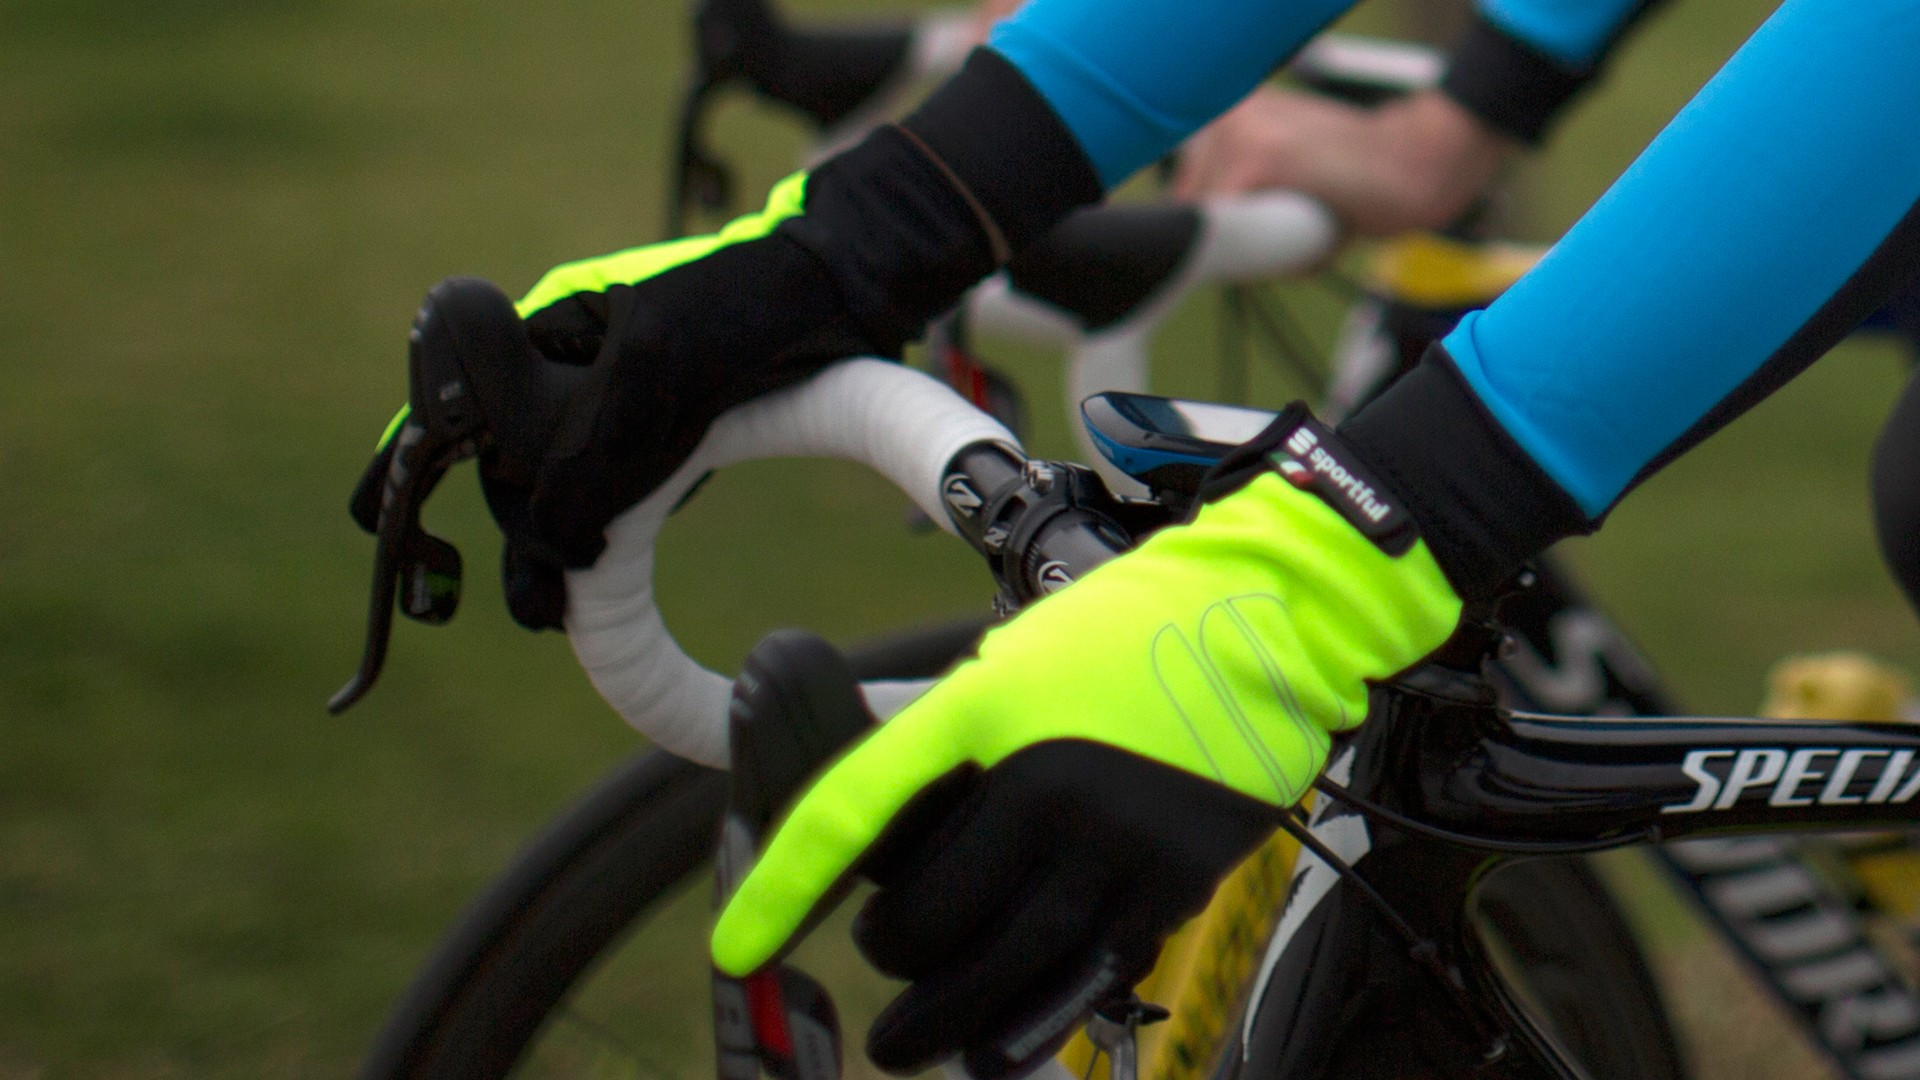 The WS Essential Glove has a Windstopper back and fleece-lined palm